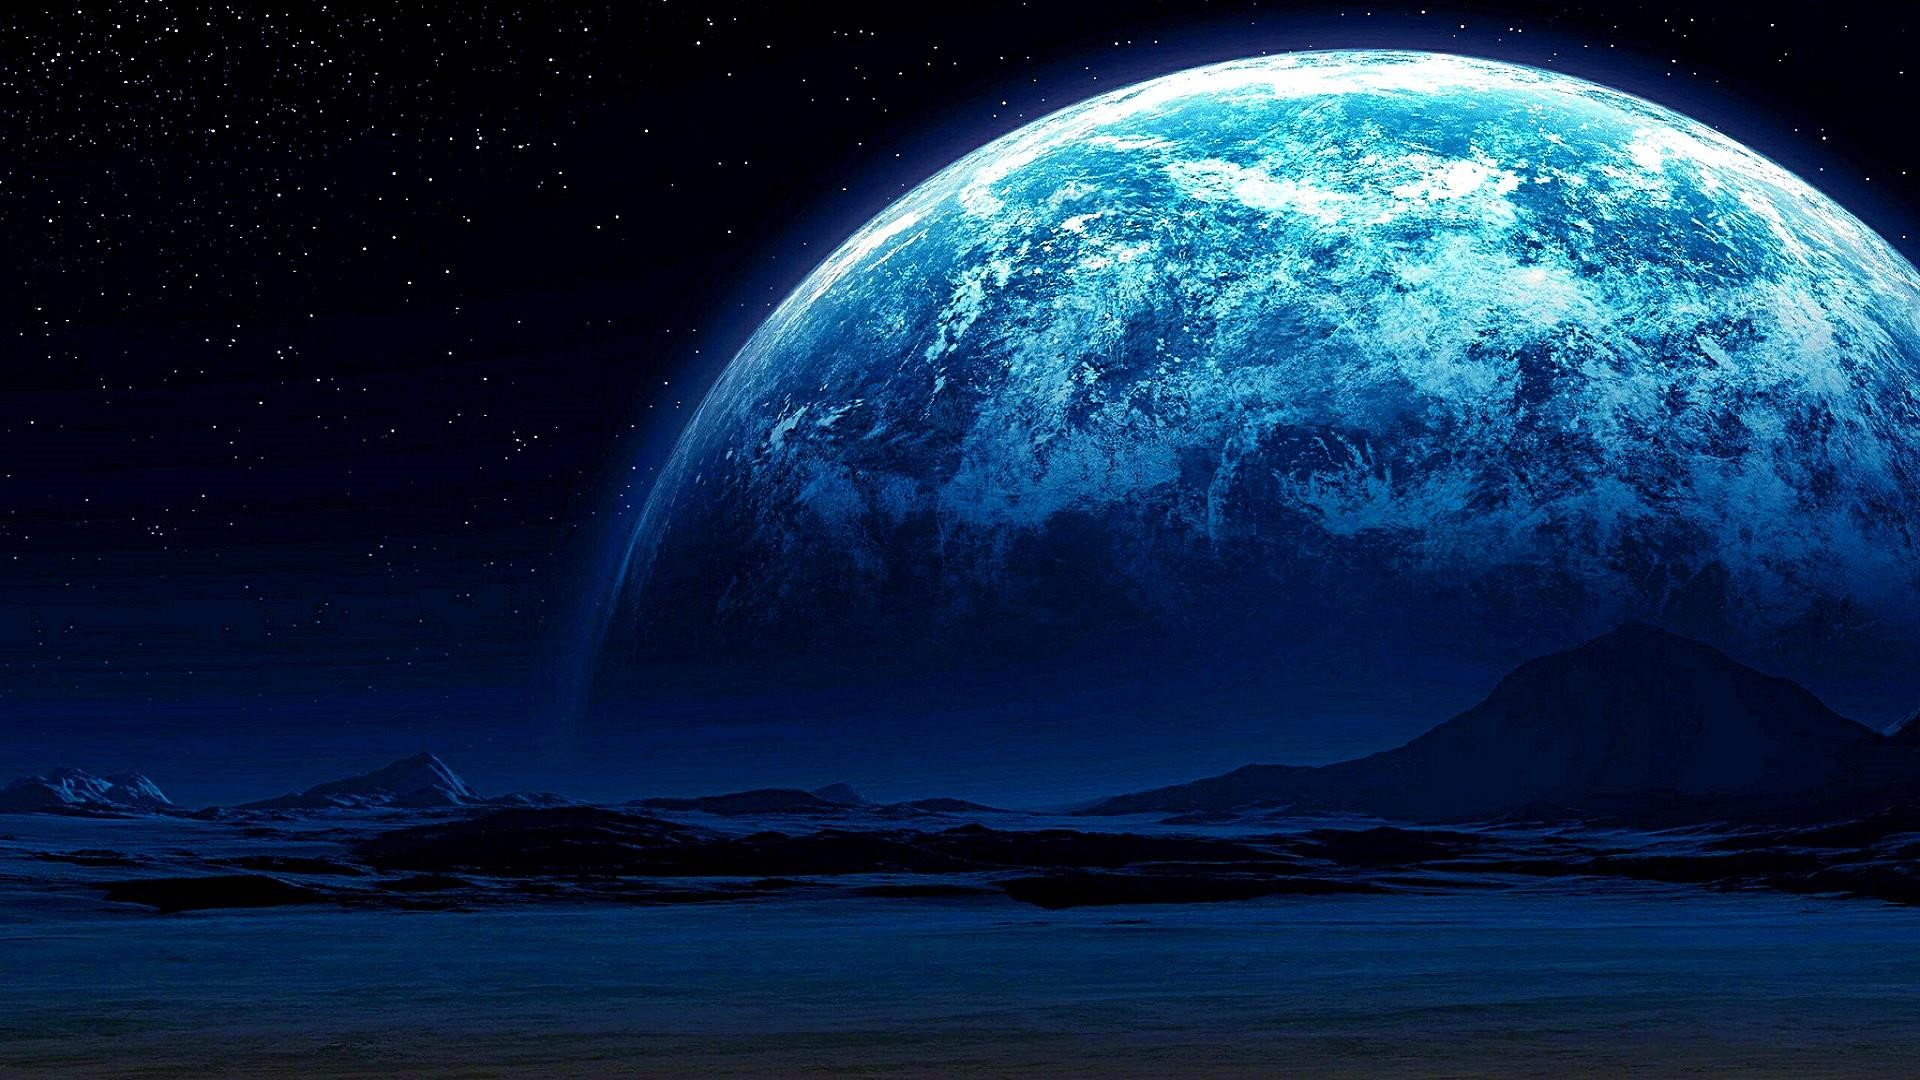 1920x1080 Earth View From The Moon Size 7680x4320 Blue Moon Art 1920x1080 Download Hd Wallpaper Wallpapertip